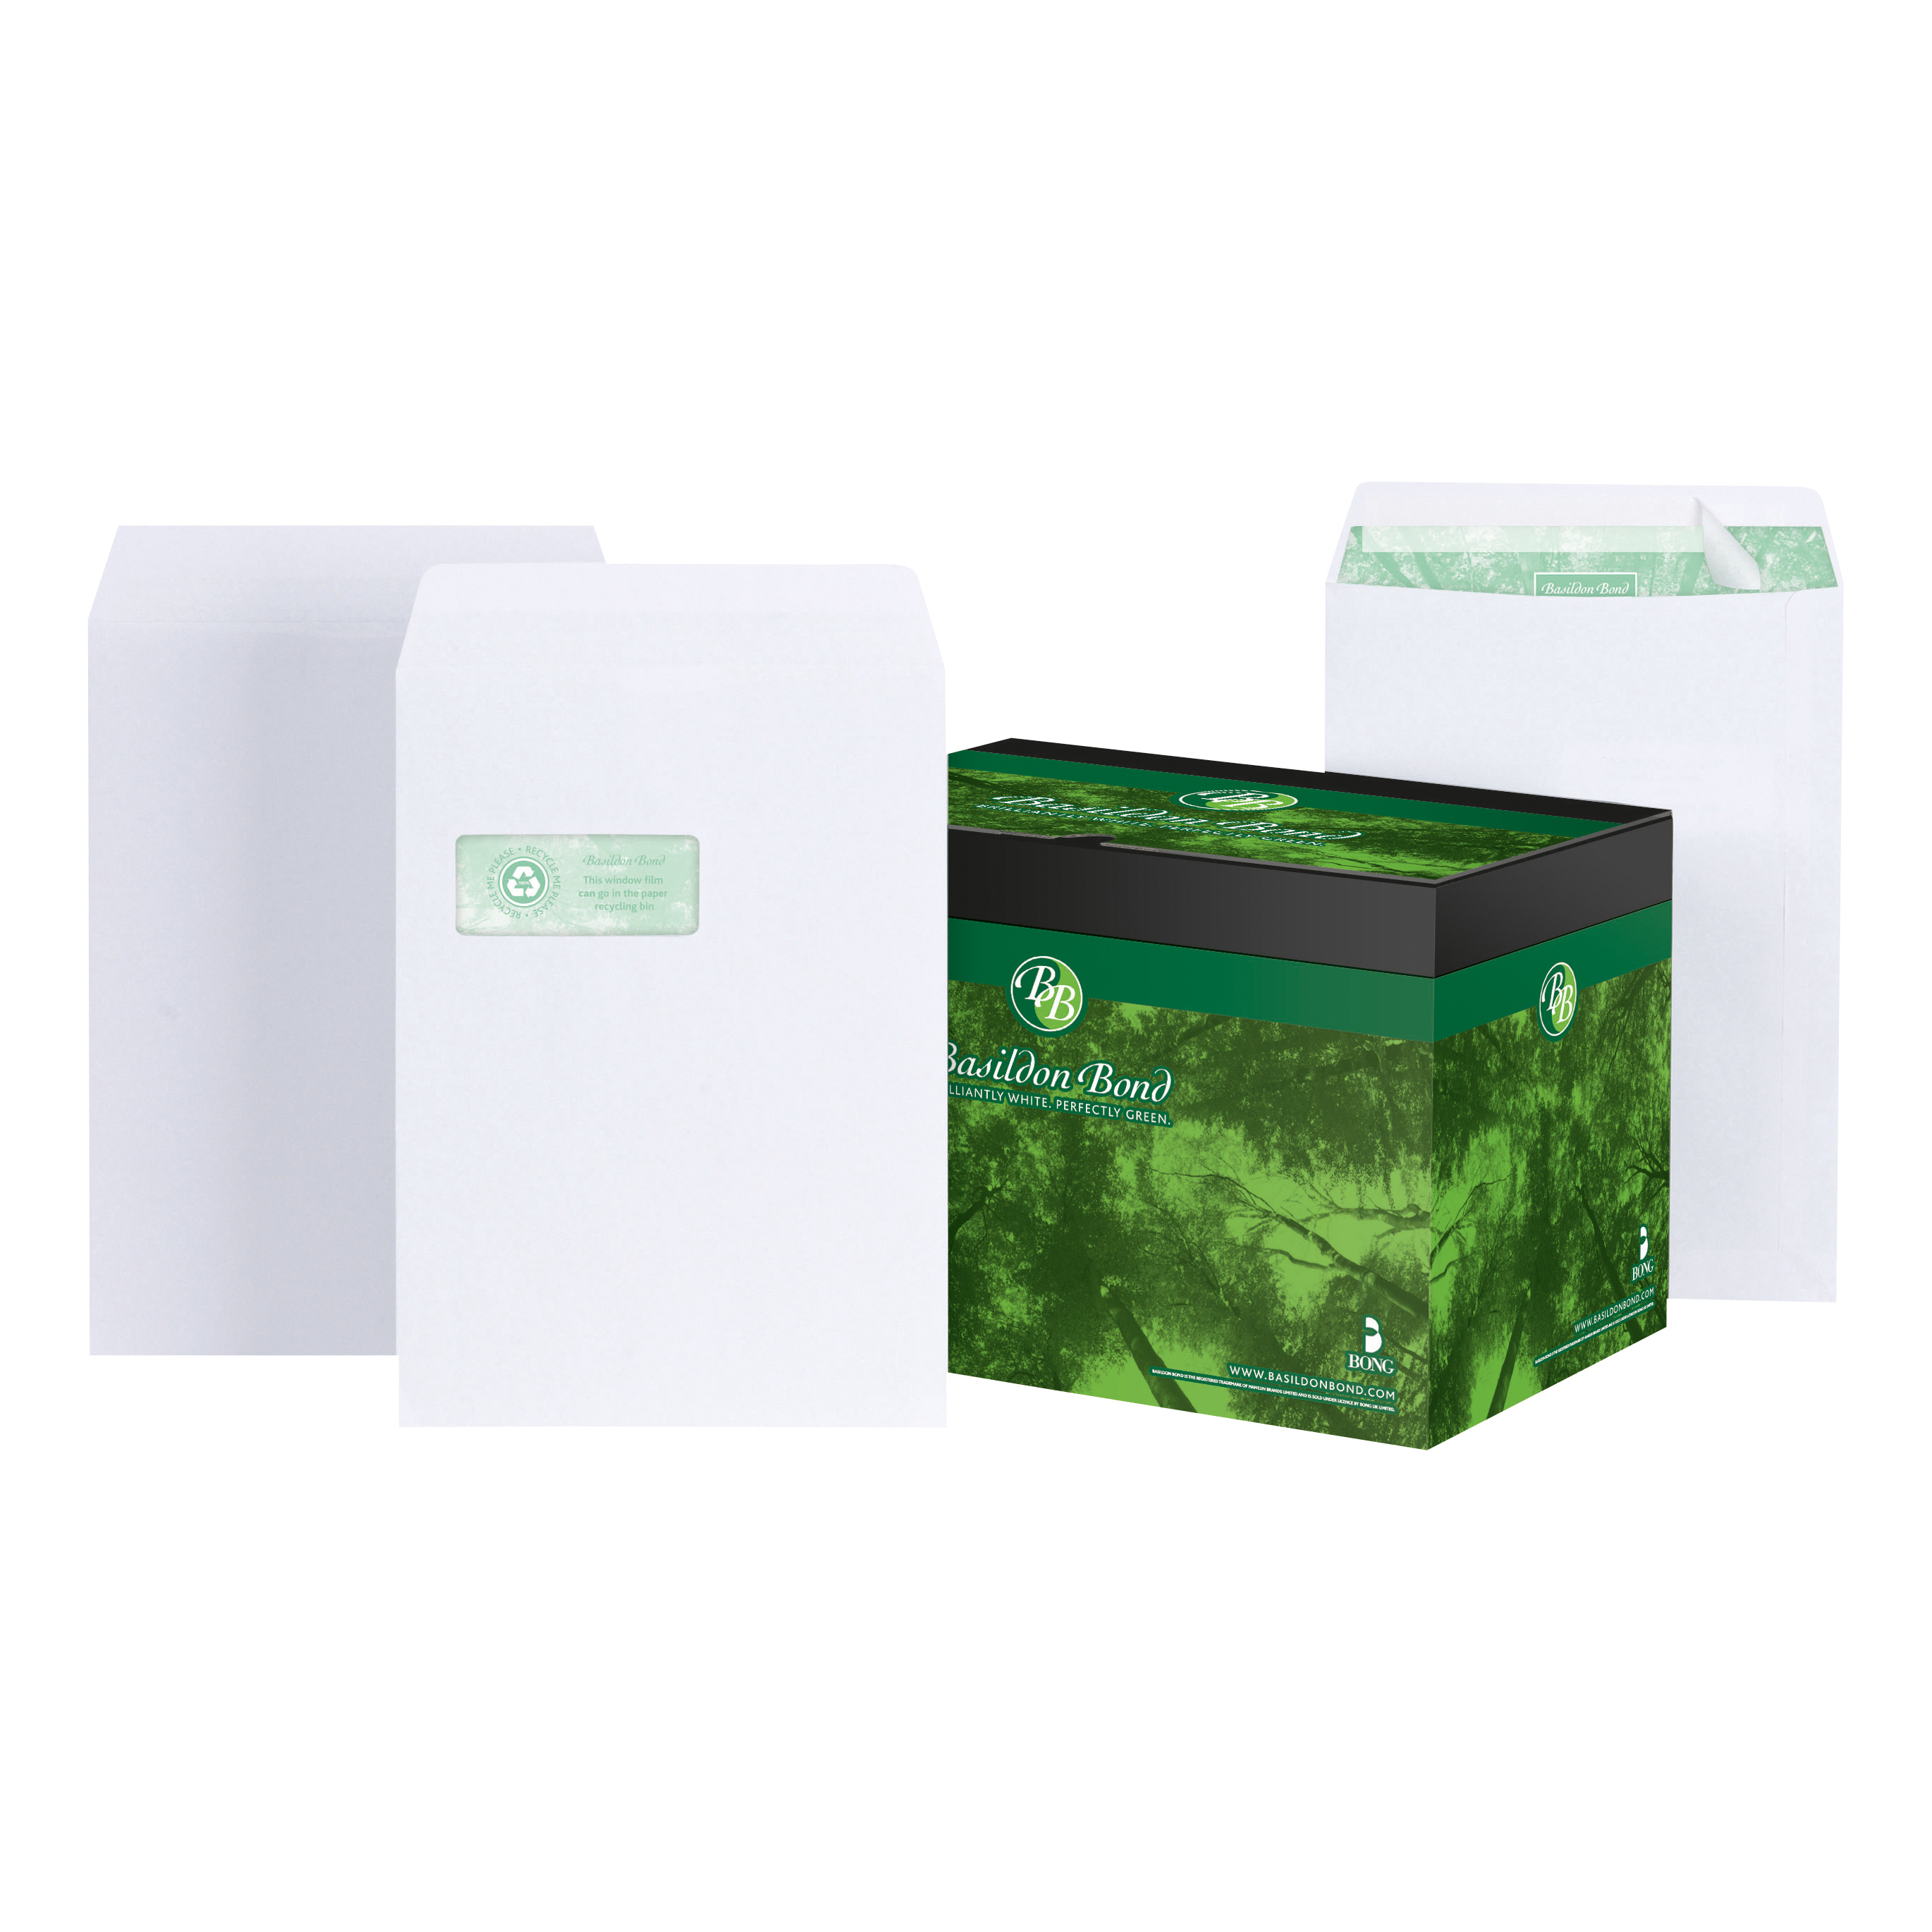 Basildon Bond Envelopes C4 Pocket Peel and Seal 120gsm White Ref M80120 [Pack 250]